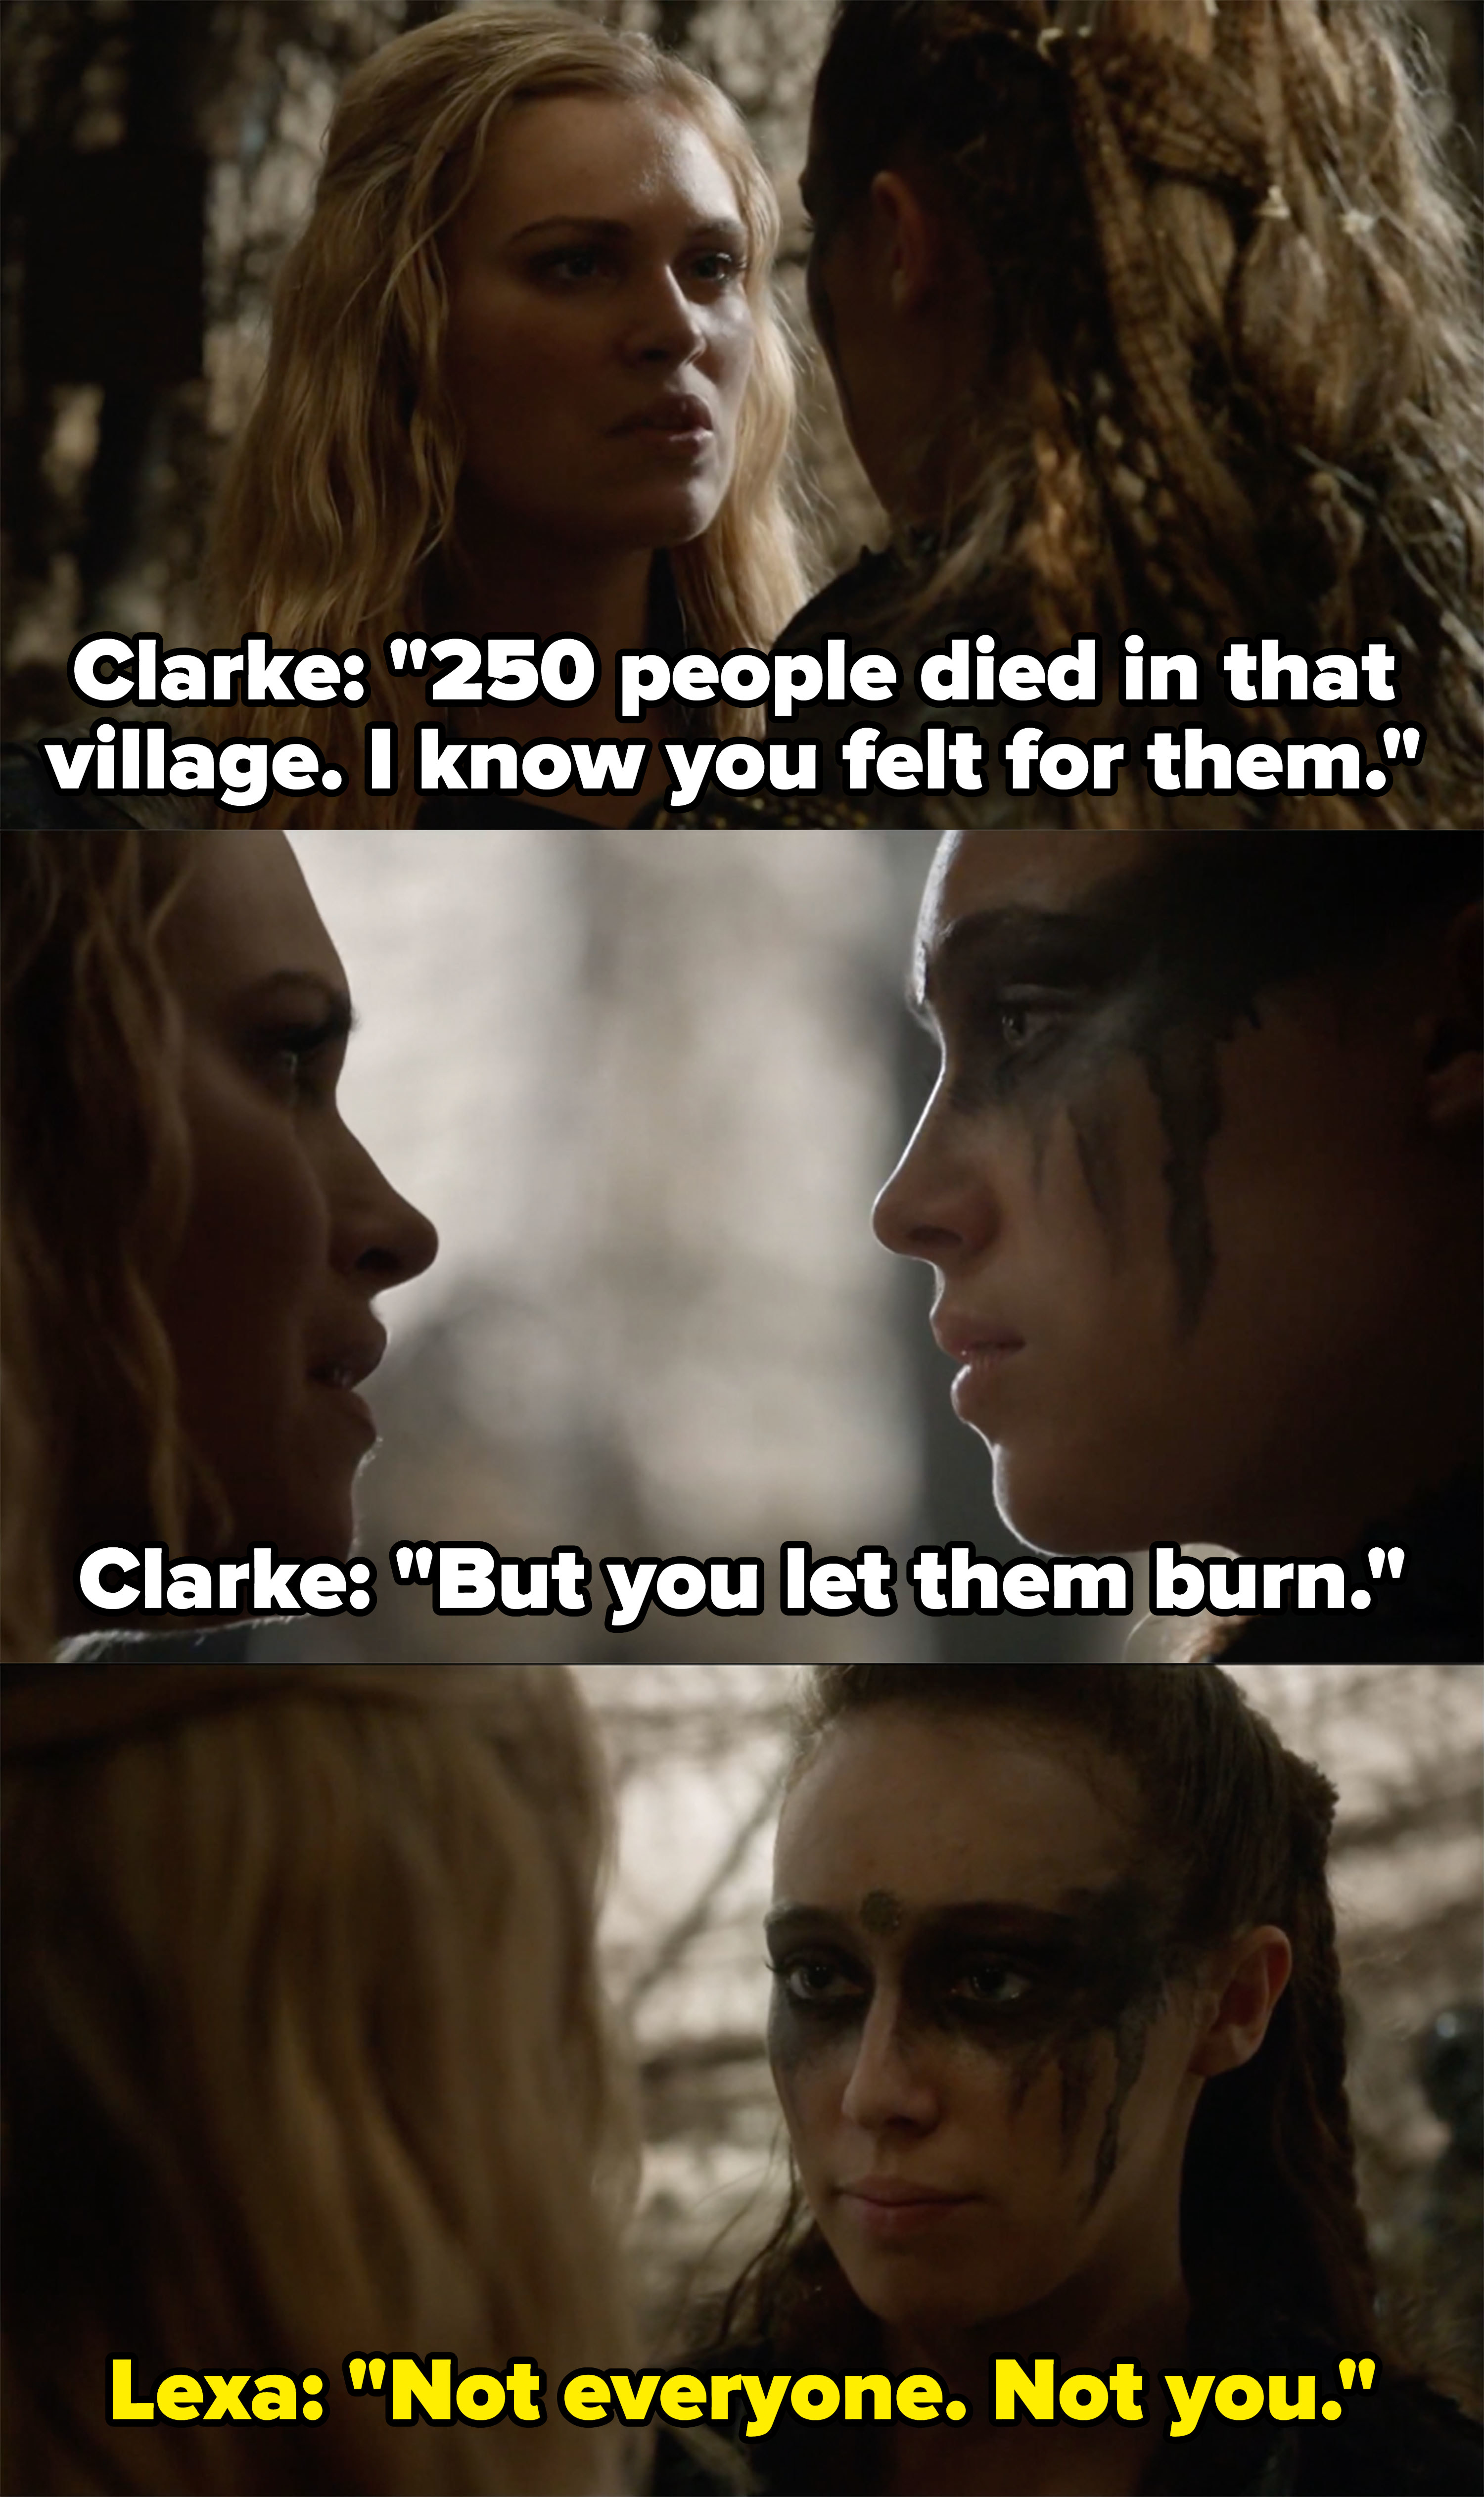 "Clarke says she knows Lexa felt for the people she let burn in the village, Lexa says she didn't let everyone burn, ""Not everyone, not you"""